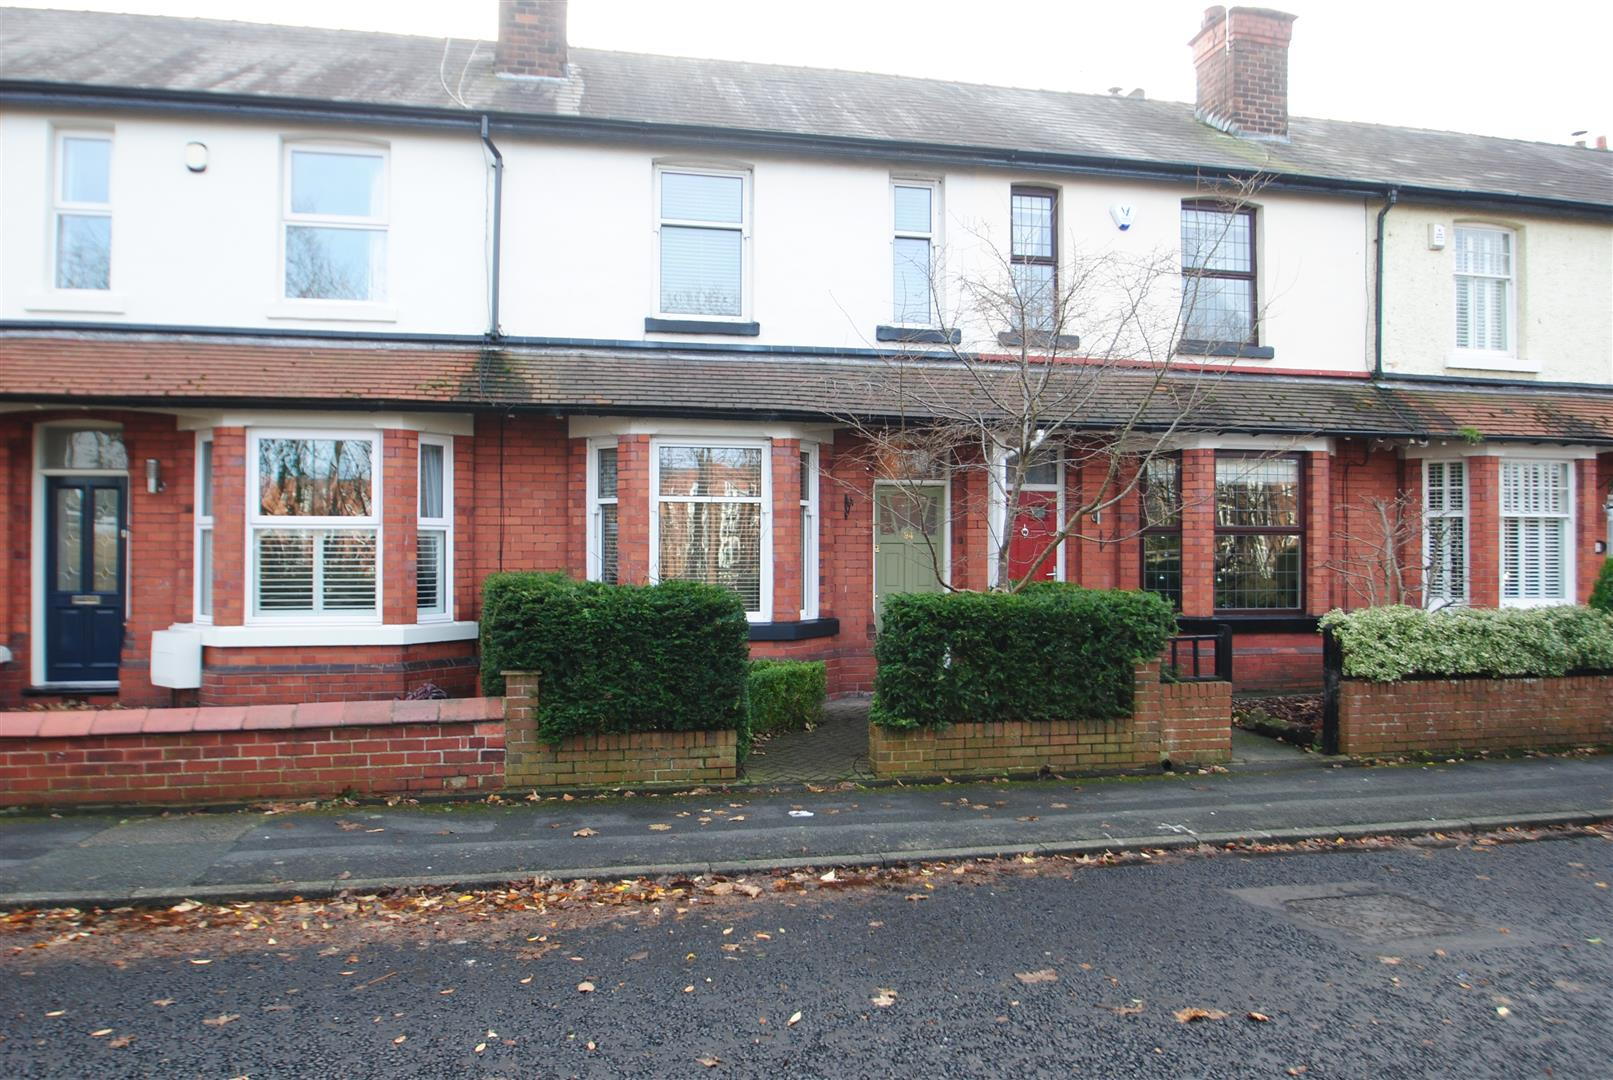 3 Bedrooms Terraced House for sale in Ellesmere Road, WALTON, Warrington, WA4